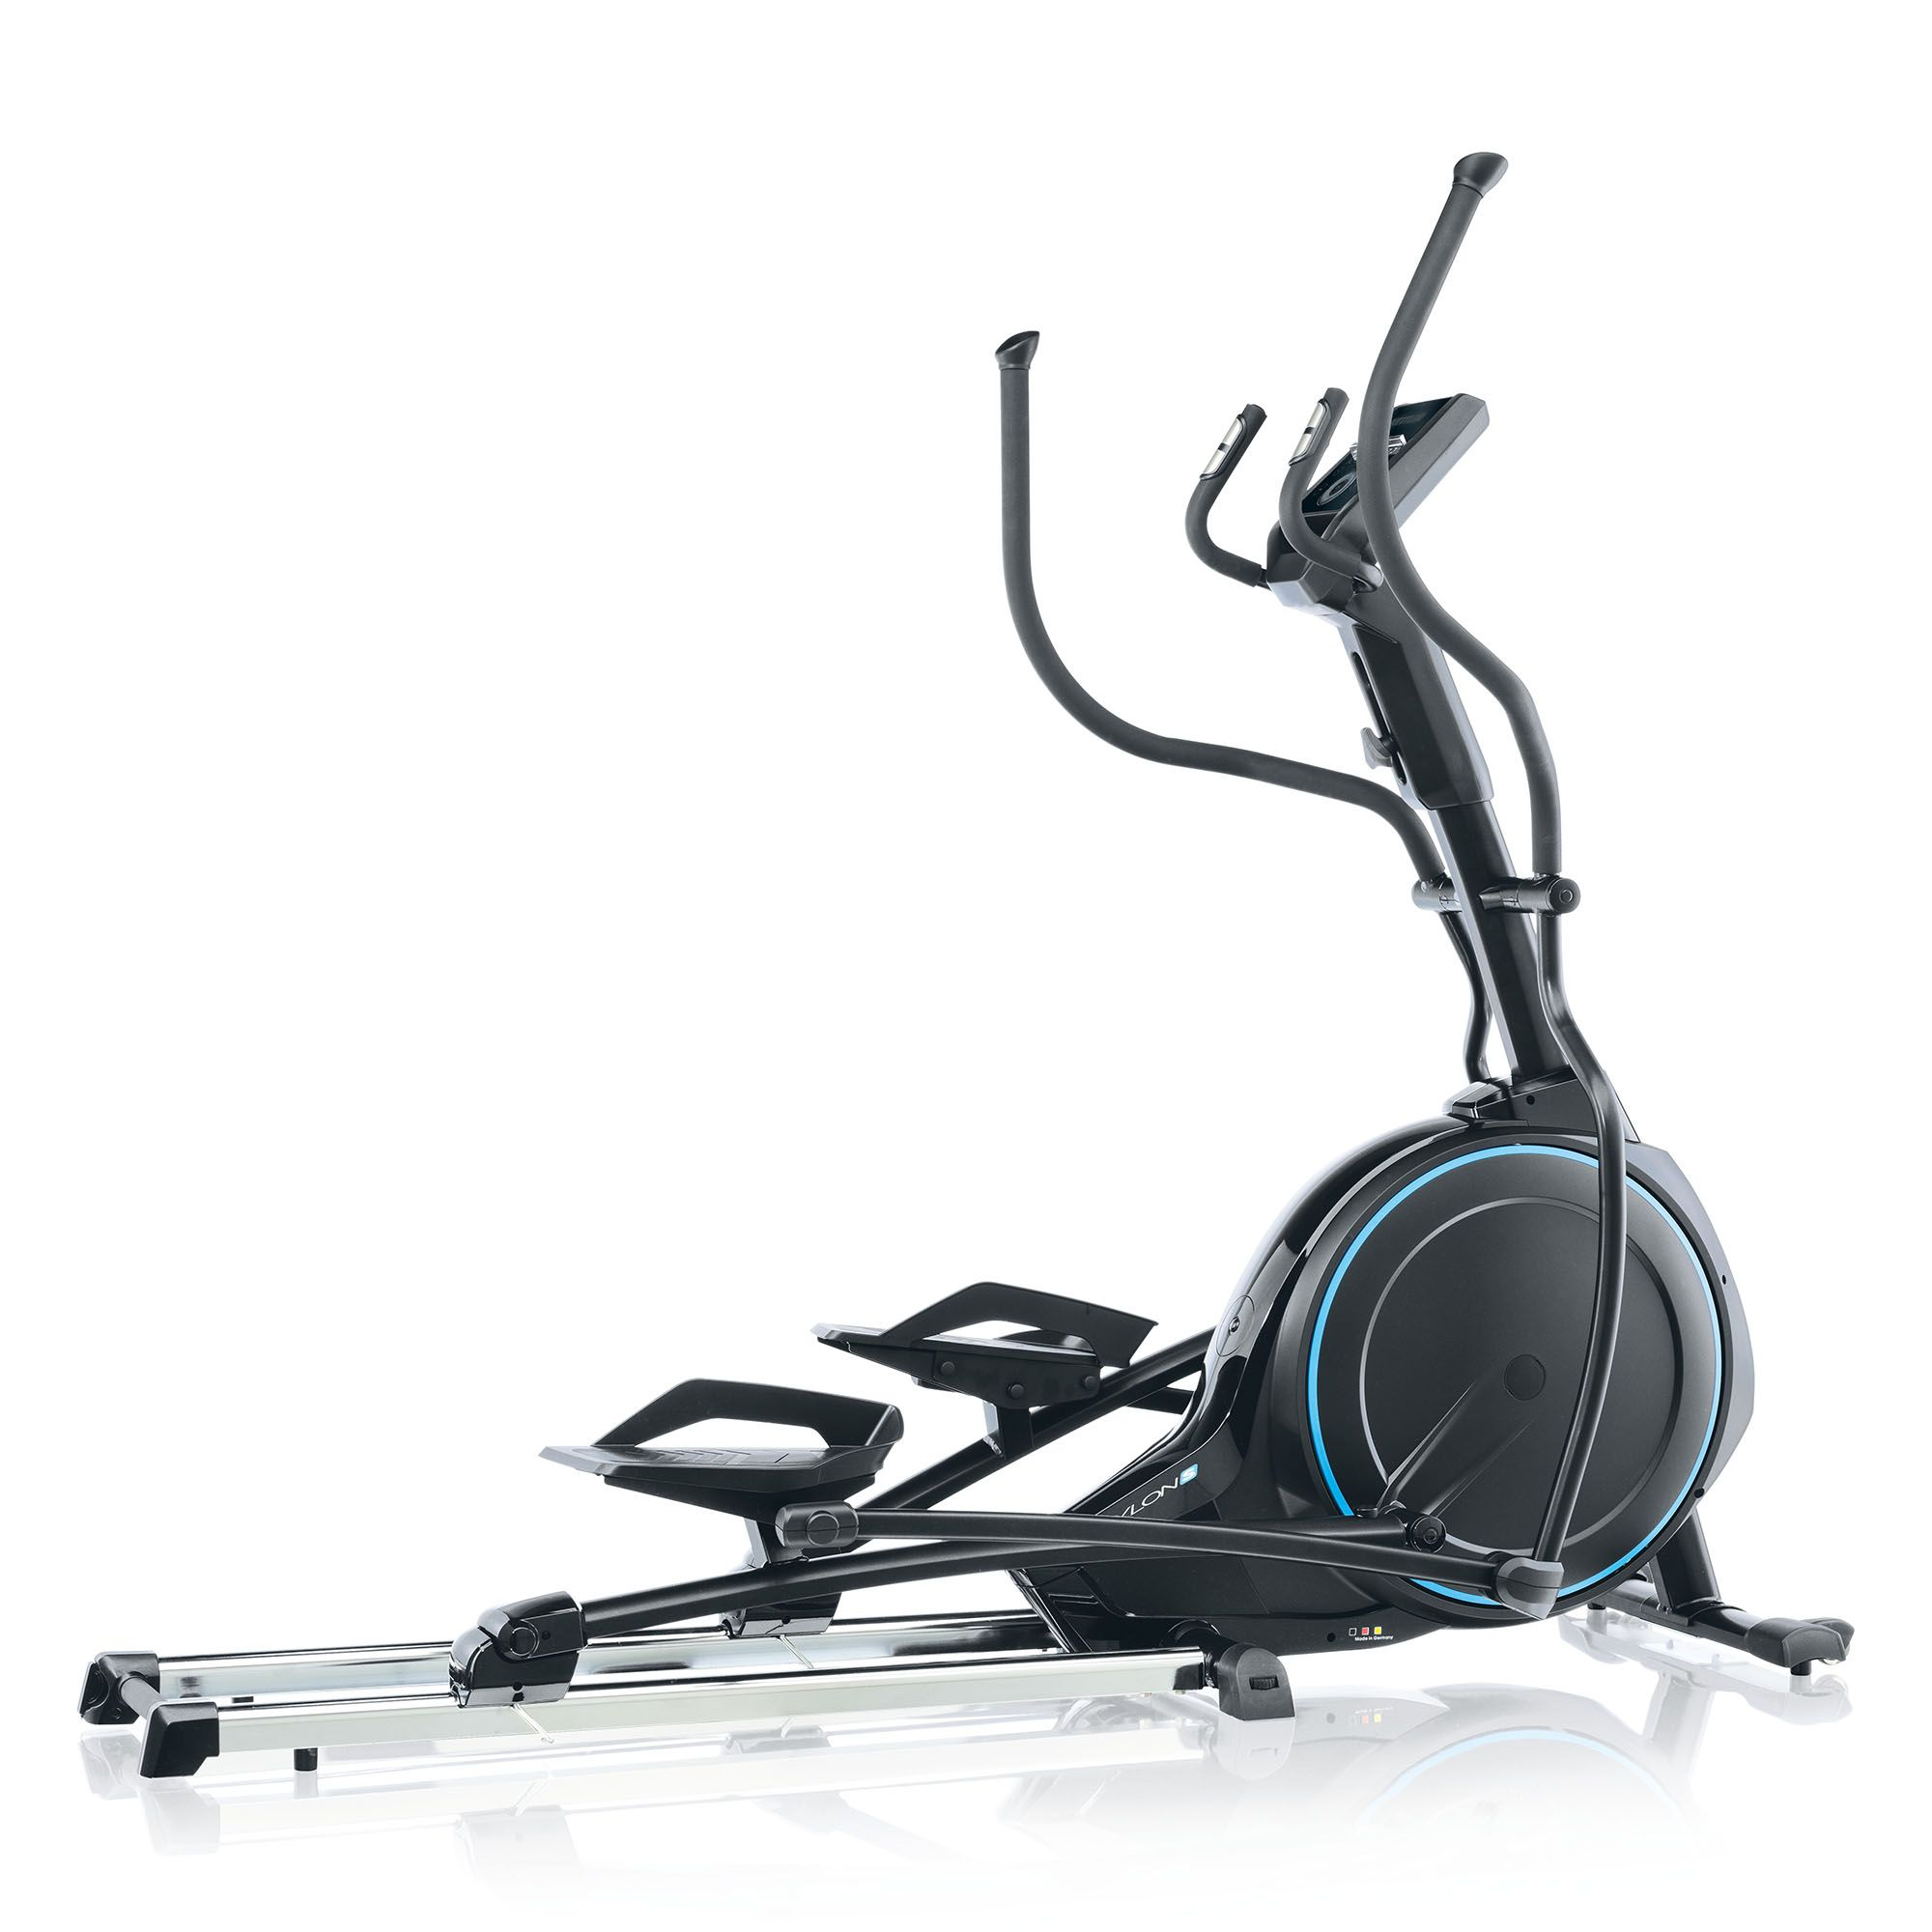 Kettler Fitness Kettler Skylon S Folding Elliptical Cross Trainer